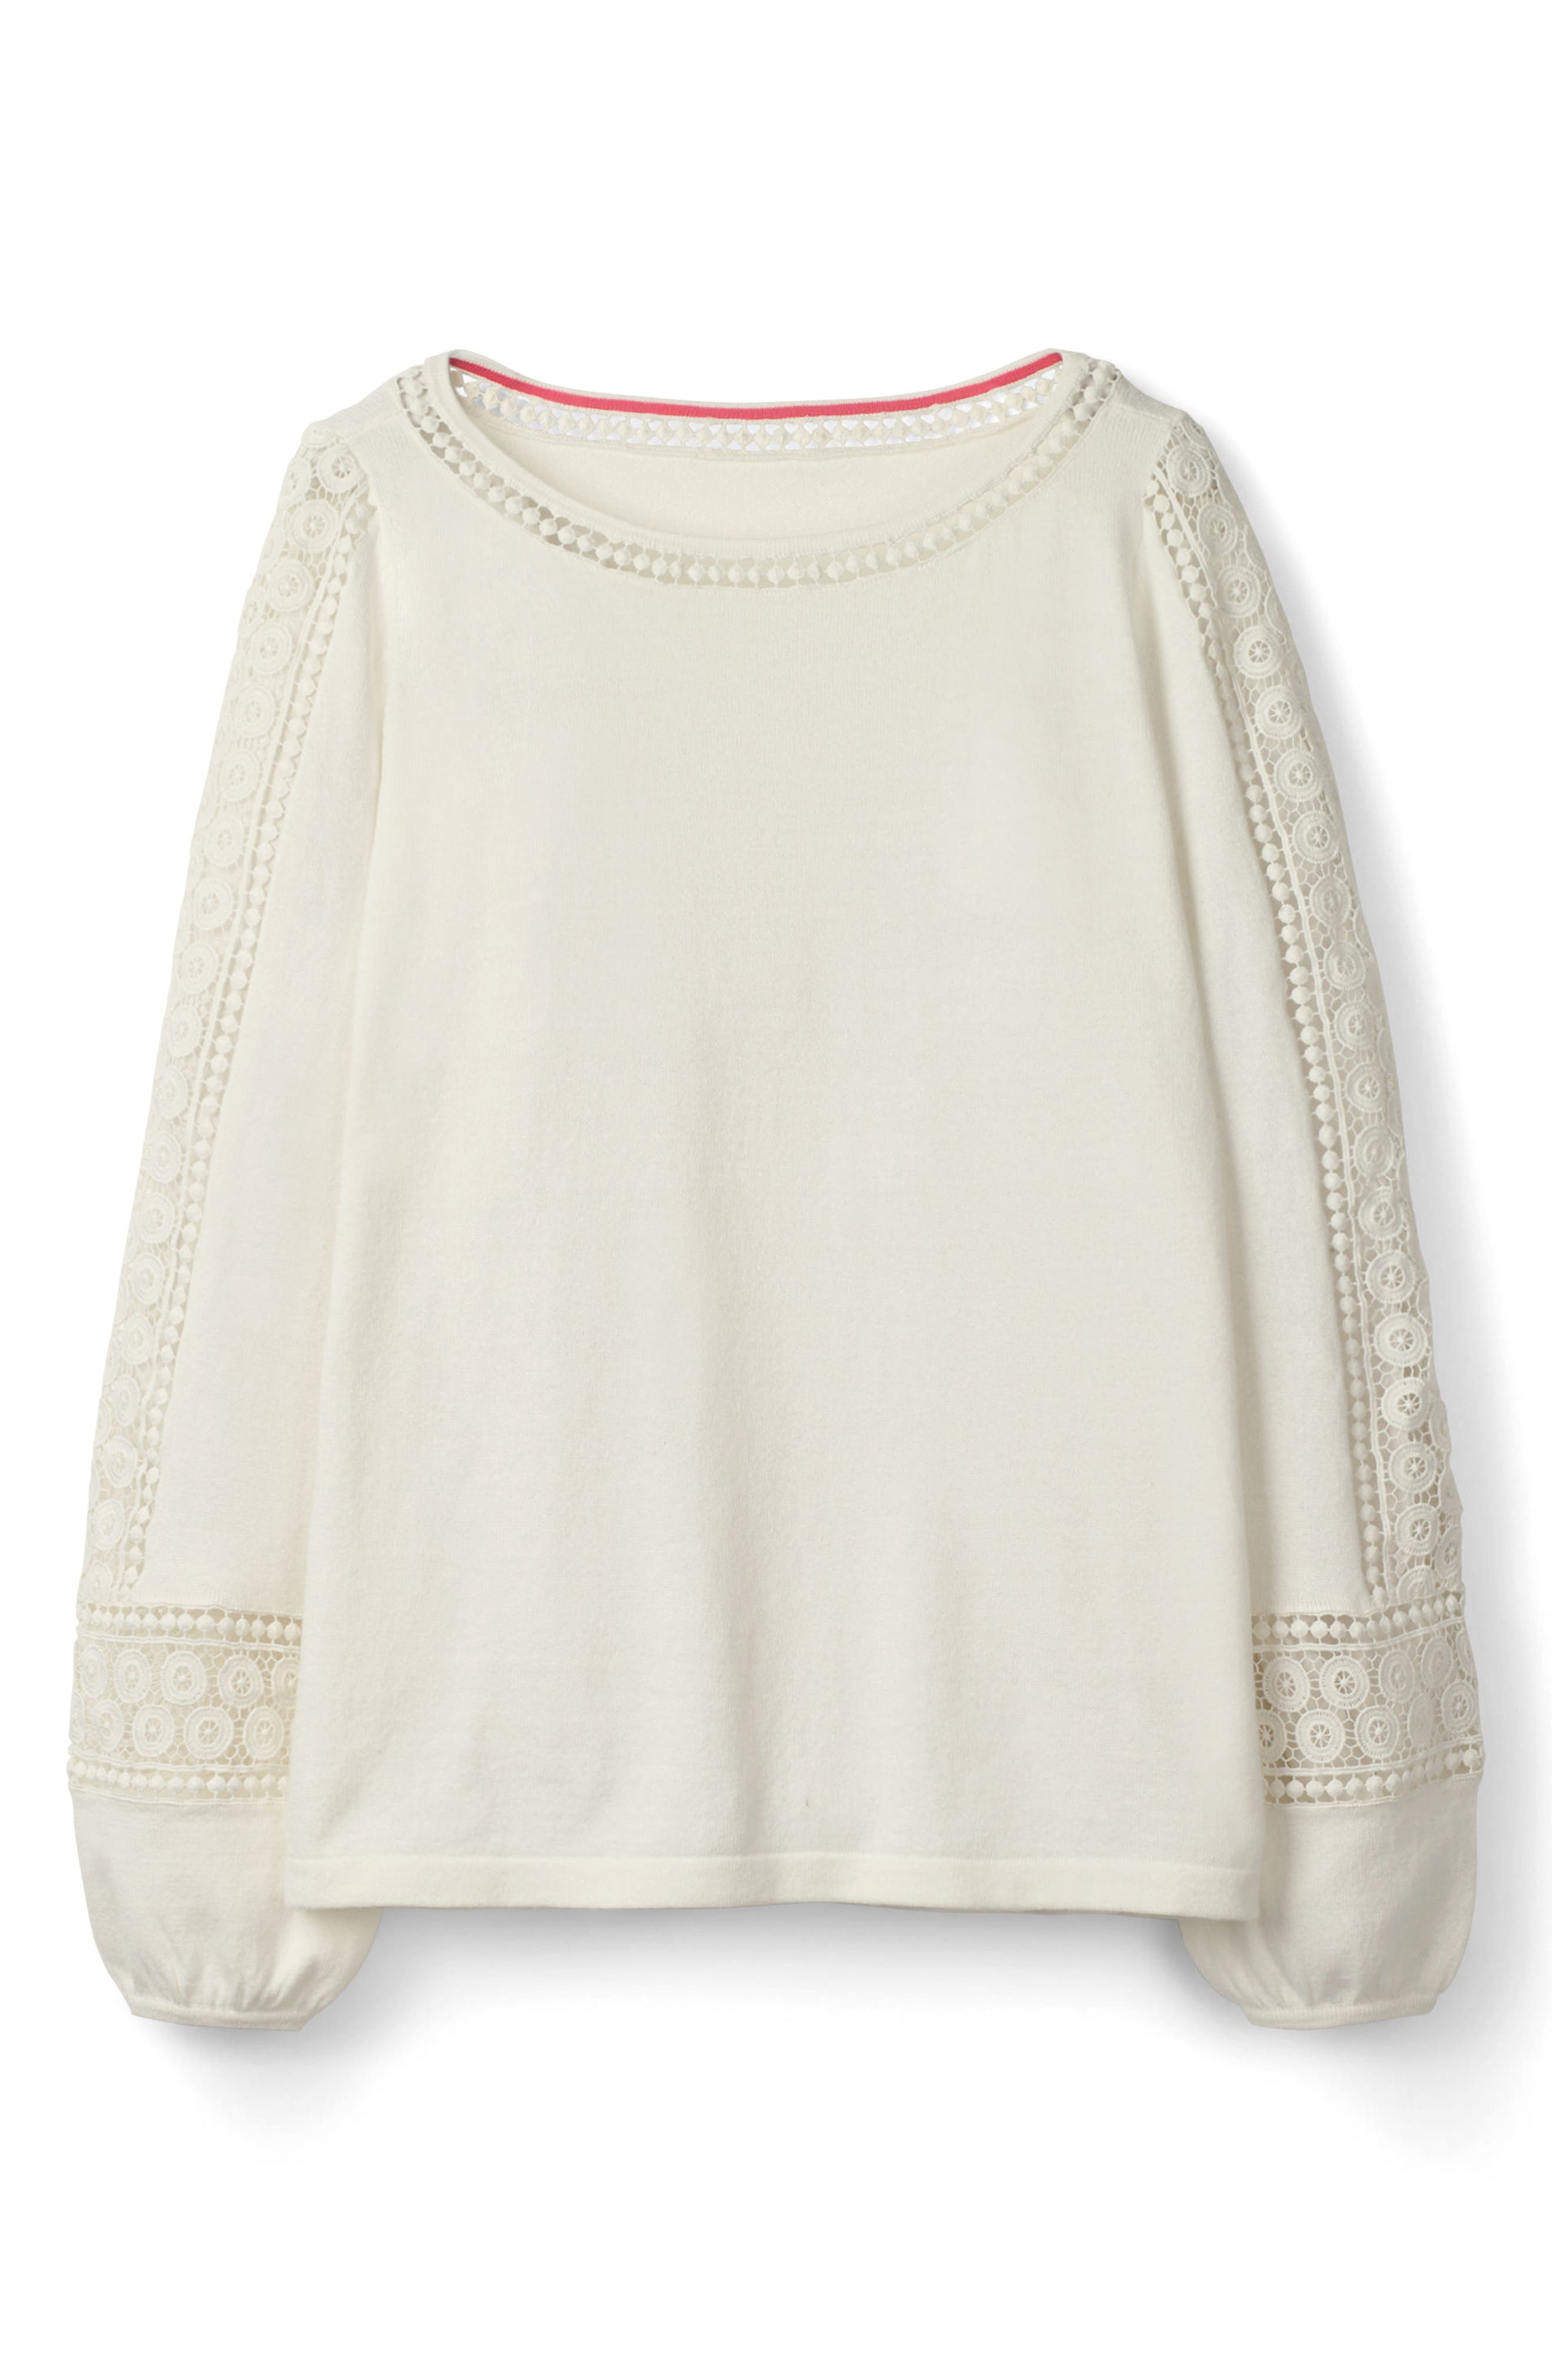 Lace Inset Cotton Sweater,                             Alternate thumbnail 7, color,                             Ivory